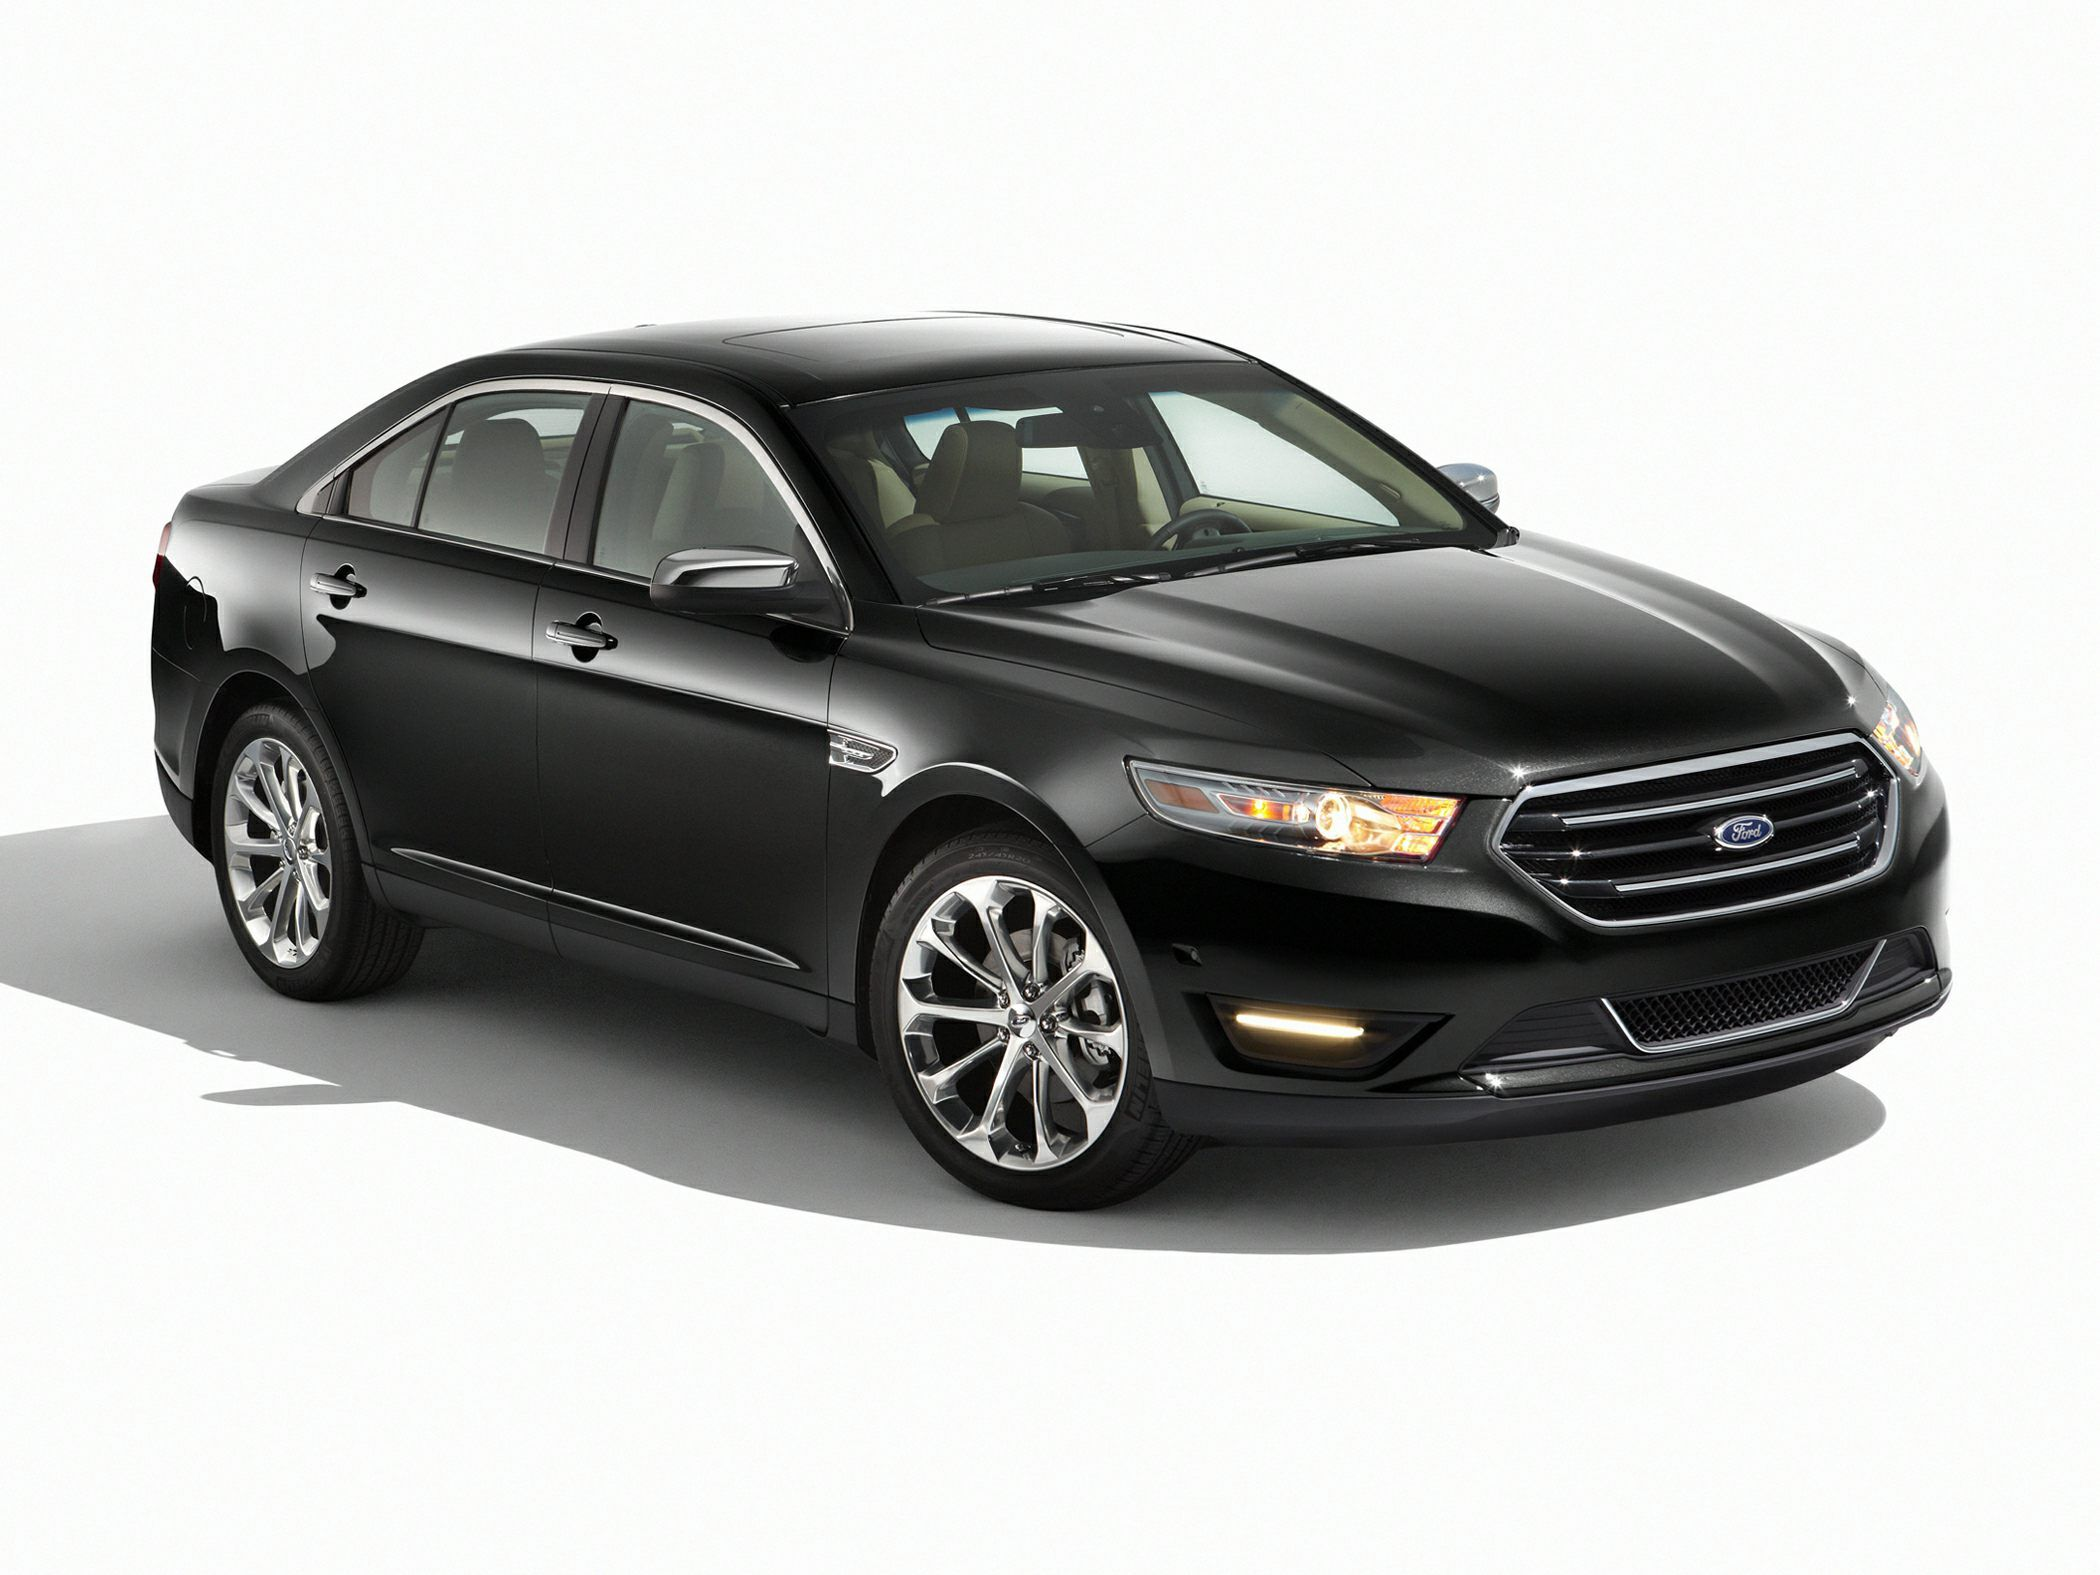 car wallpaper for 2013 ford taurus sedan car picture collection rh pinterest com au 2013 ford taurus sel service manual 2013 ford taurus limited owners manual